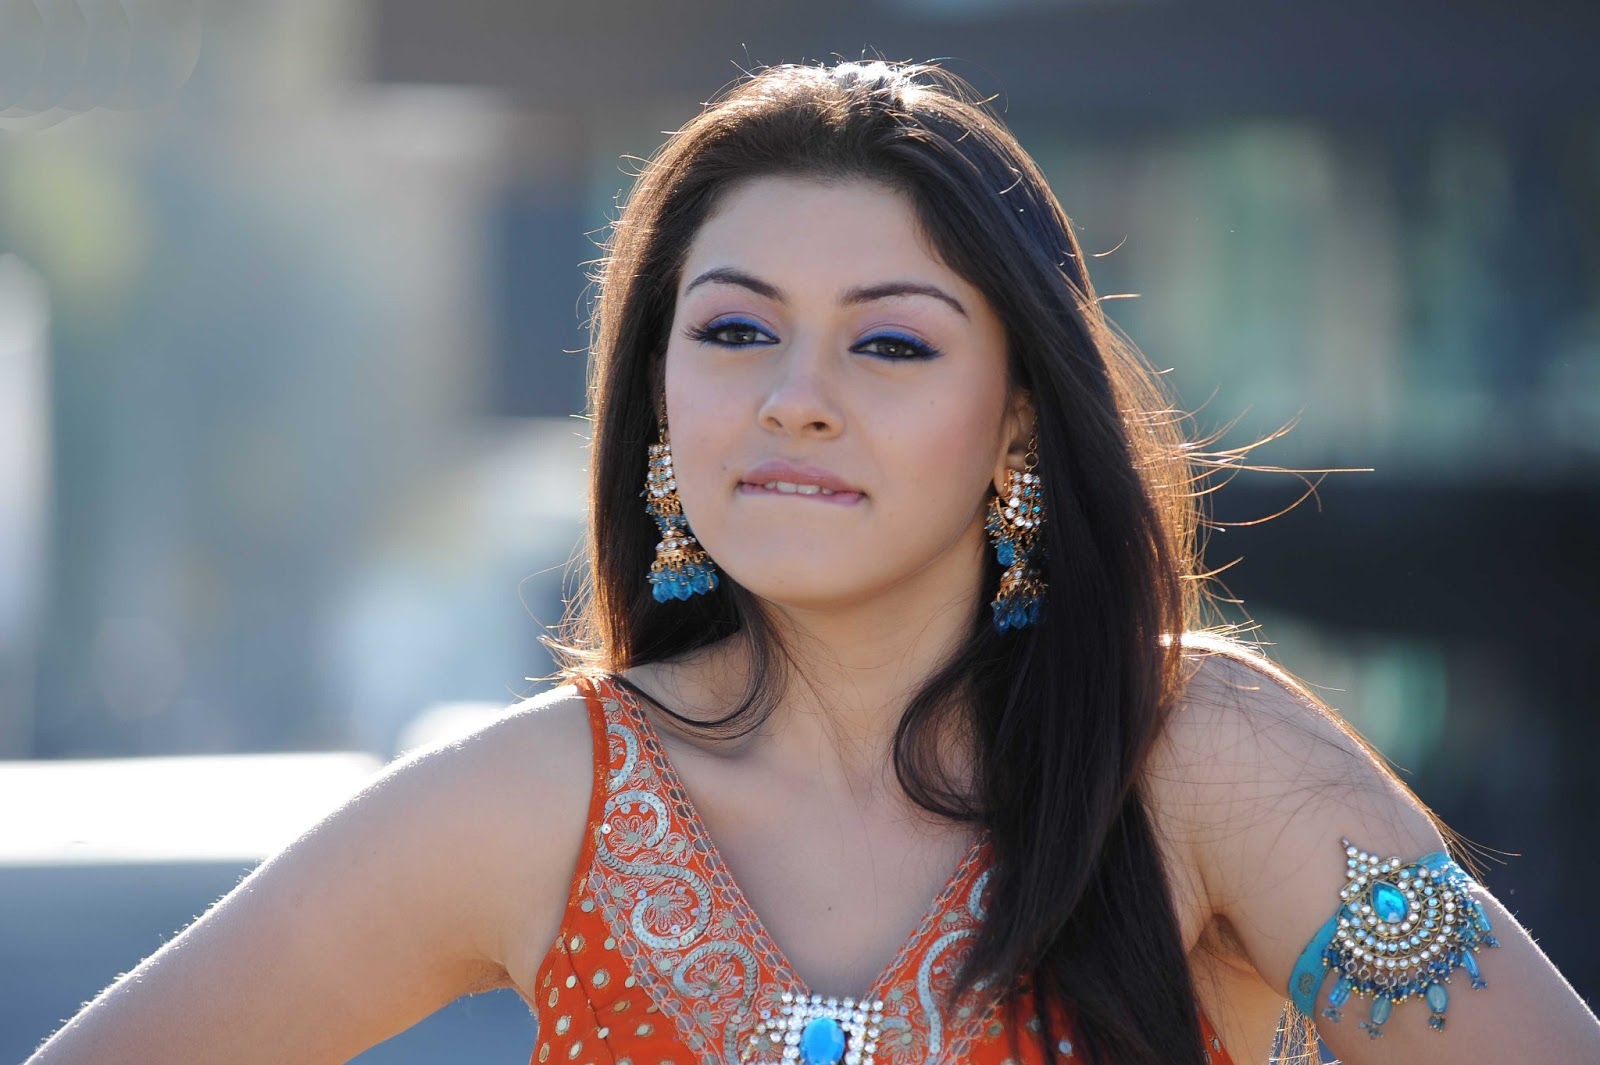 free download wallpaper hd : hansika motwani hd wallpapers